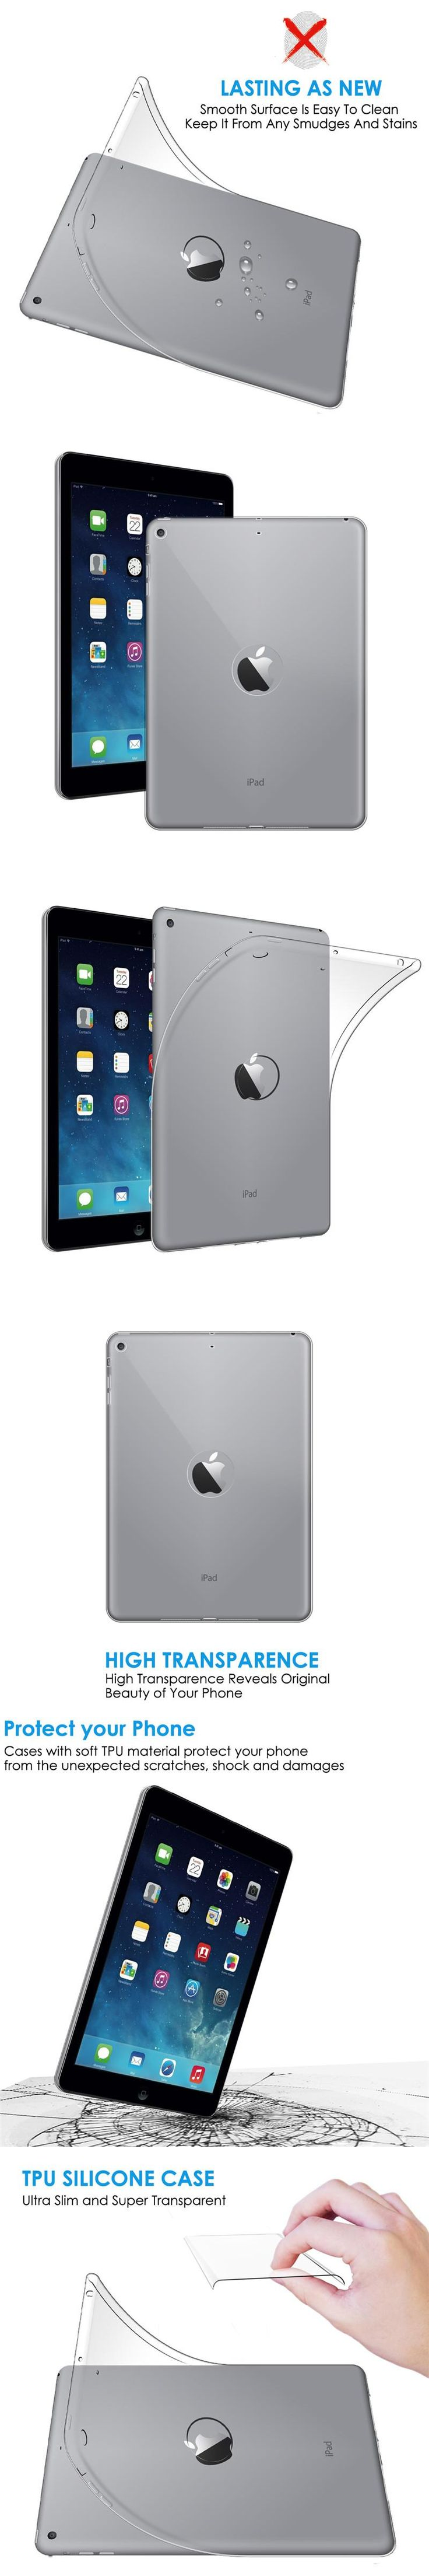 Qosea For Apple i Pad Air Case Ultra-thin Anti-Knock Silicone Soft TPU luxury For i Pad 5/Air Transparent Protective Cover Coque